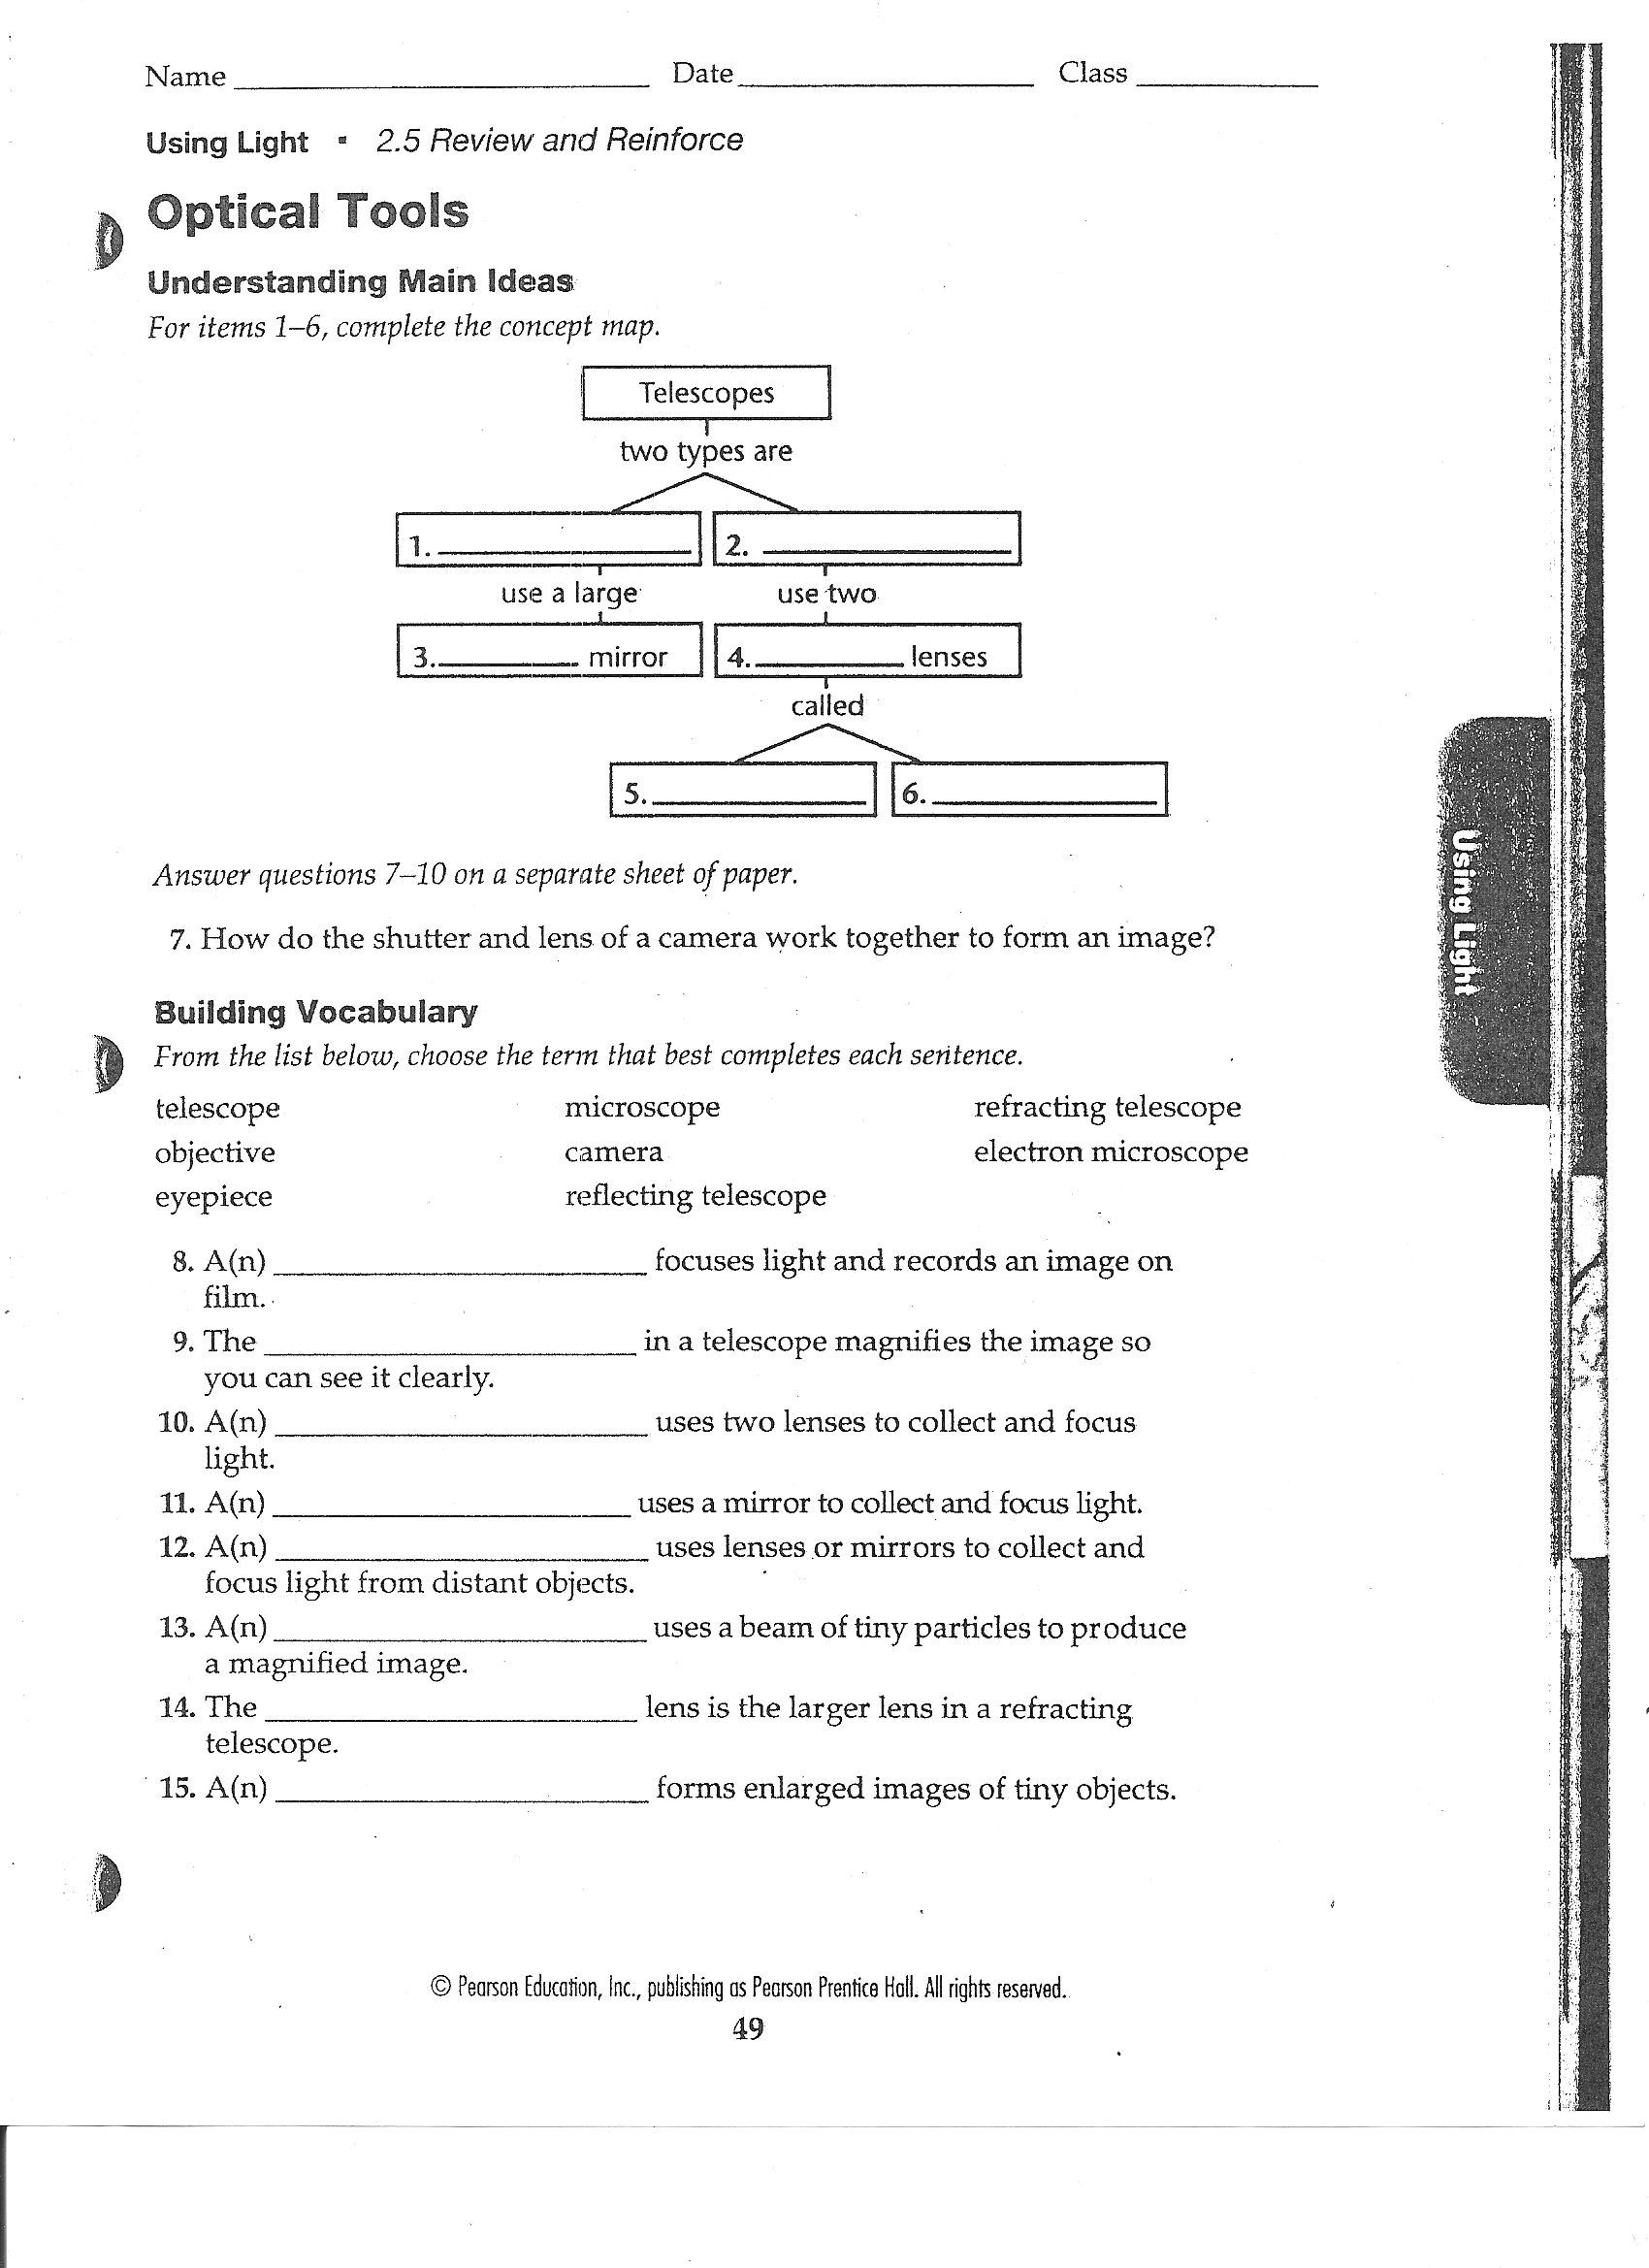 worksheet Looking Inside Cells Worksheet Answers canyon lake middle school optical tools ws 001 jpg